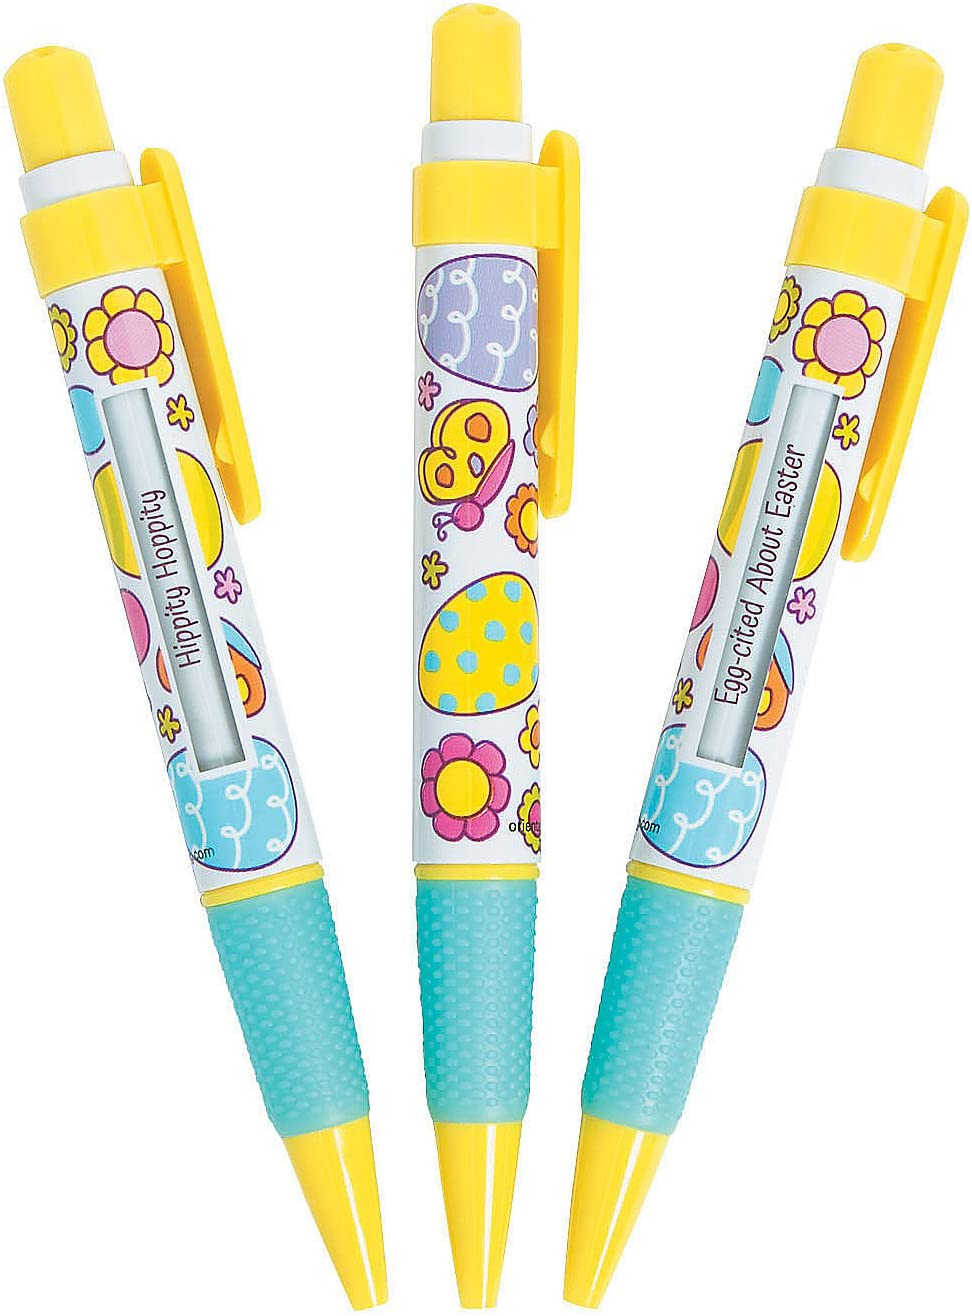 Pens Fun Express 12 Pieces Basic Easter Easter Message Pen for Easter Stationery